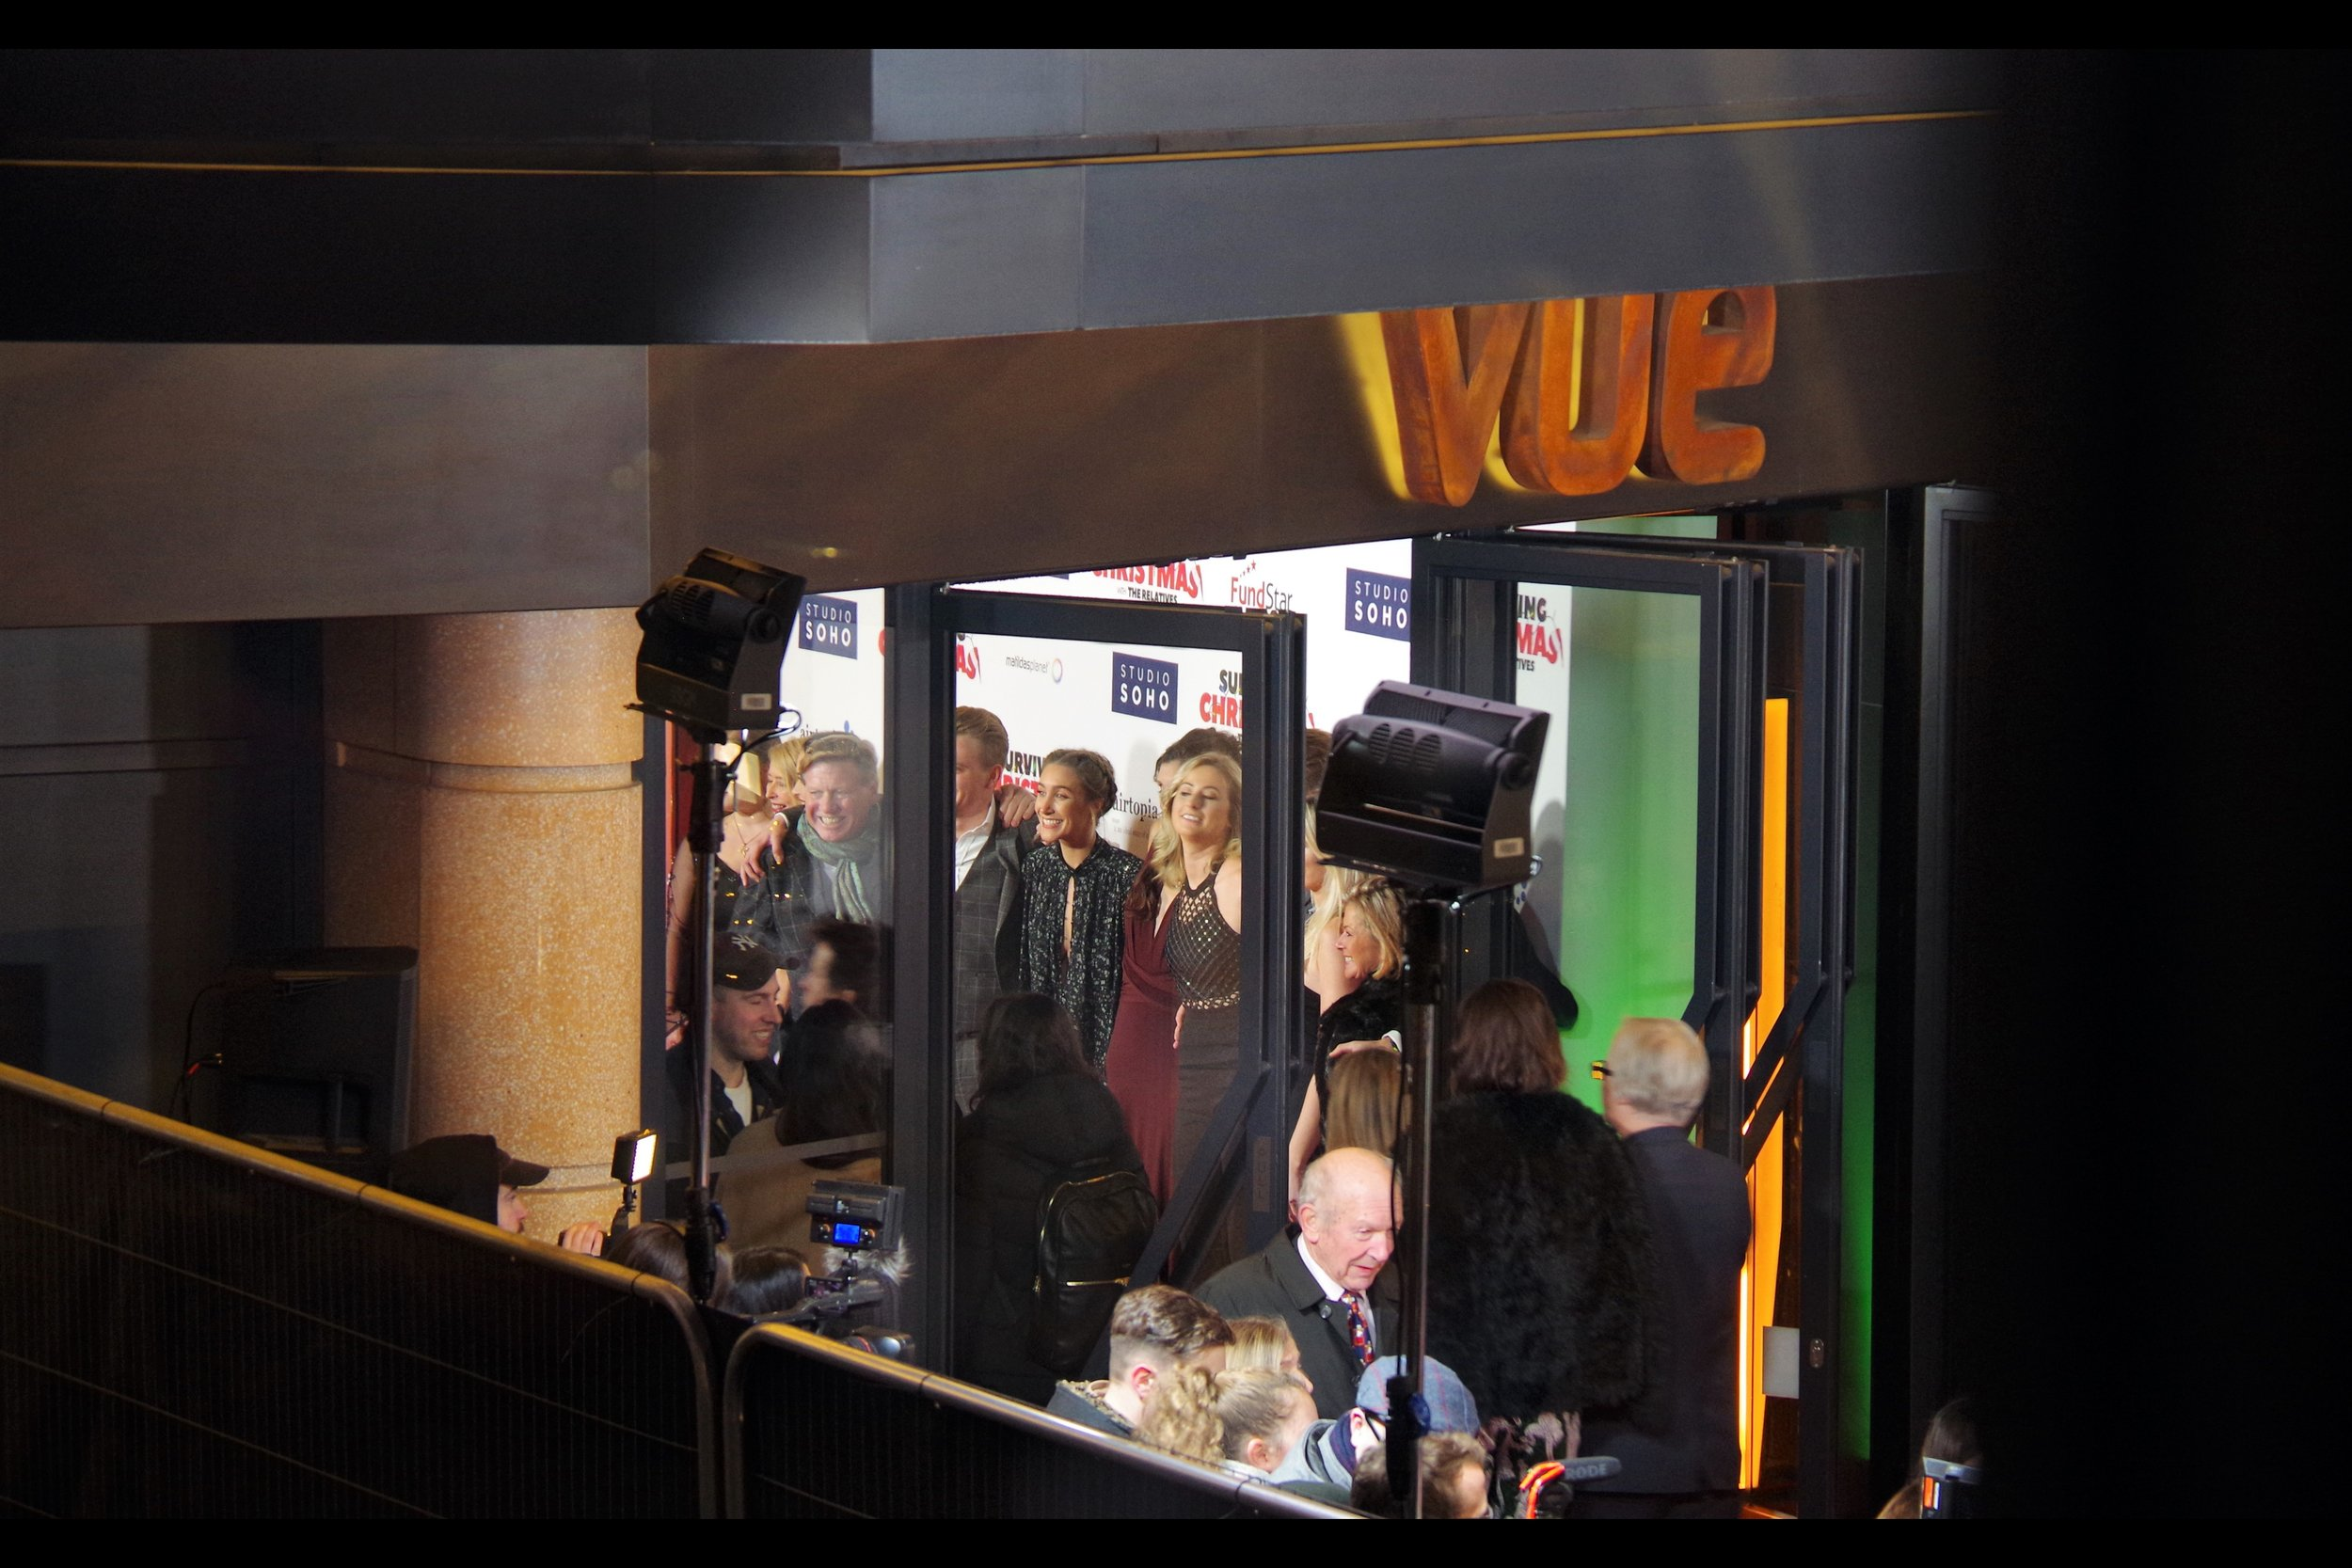 Meanwhile the interior posing board of the Vue cinema contains a row of people I didn't notice walking on the red carpet. Then again, there's a remote chance I might have been momentarily distracted for a few moments.